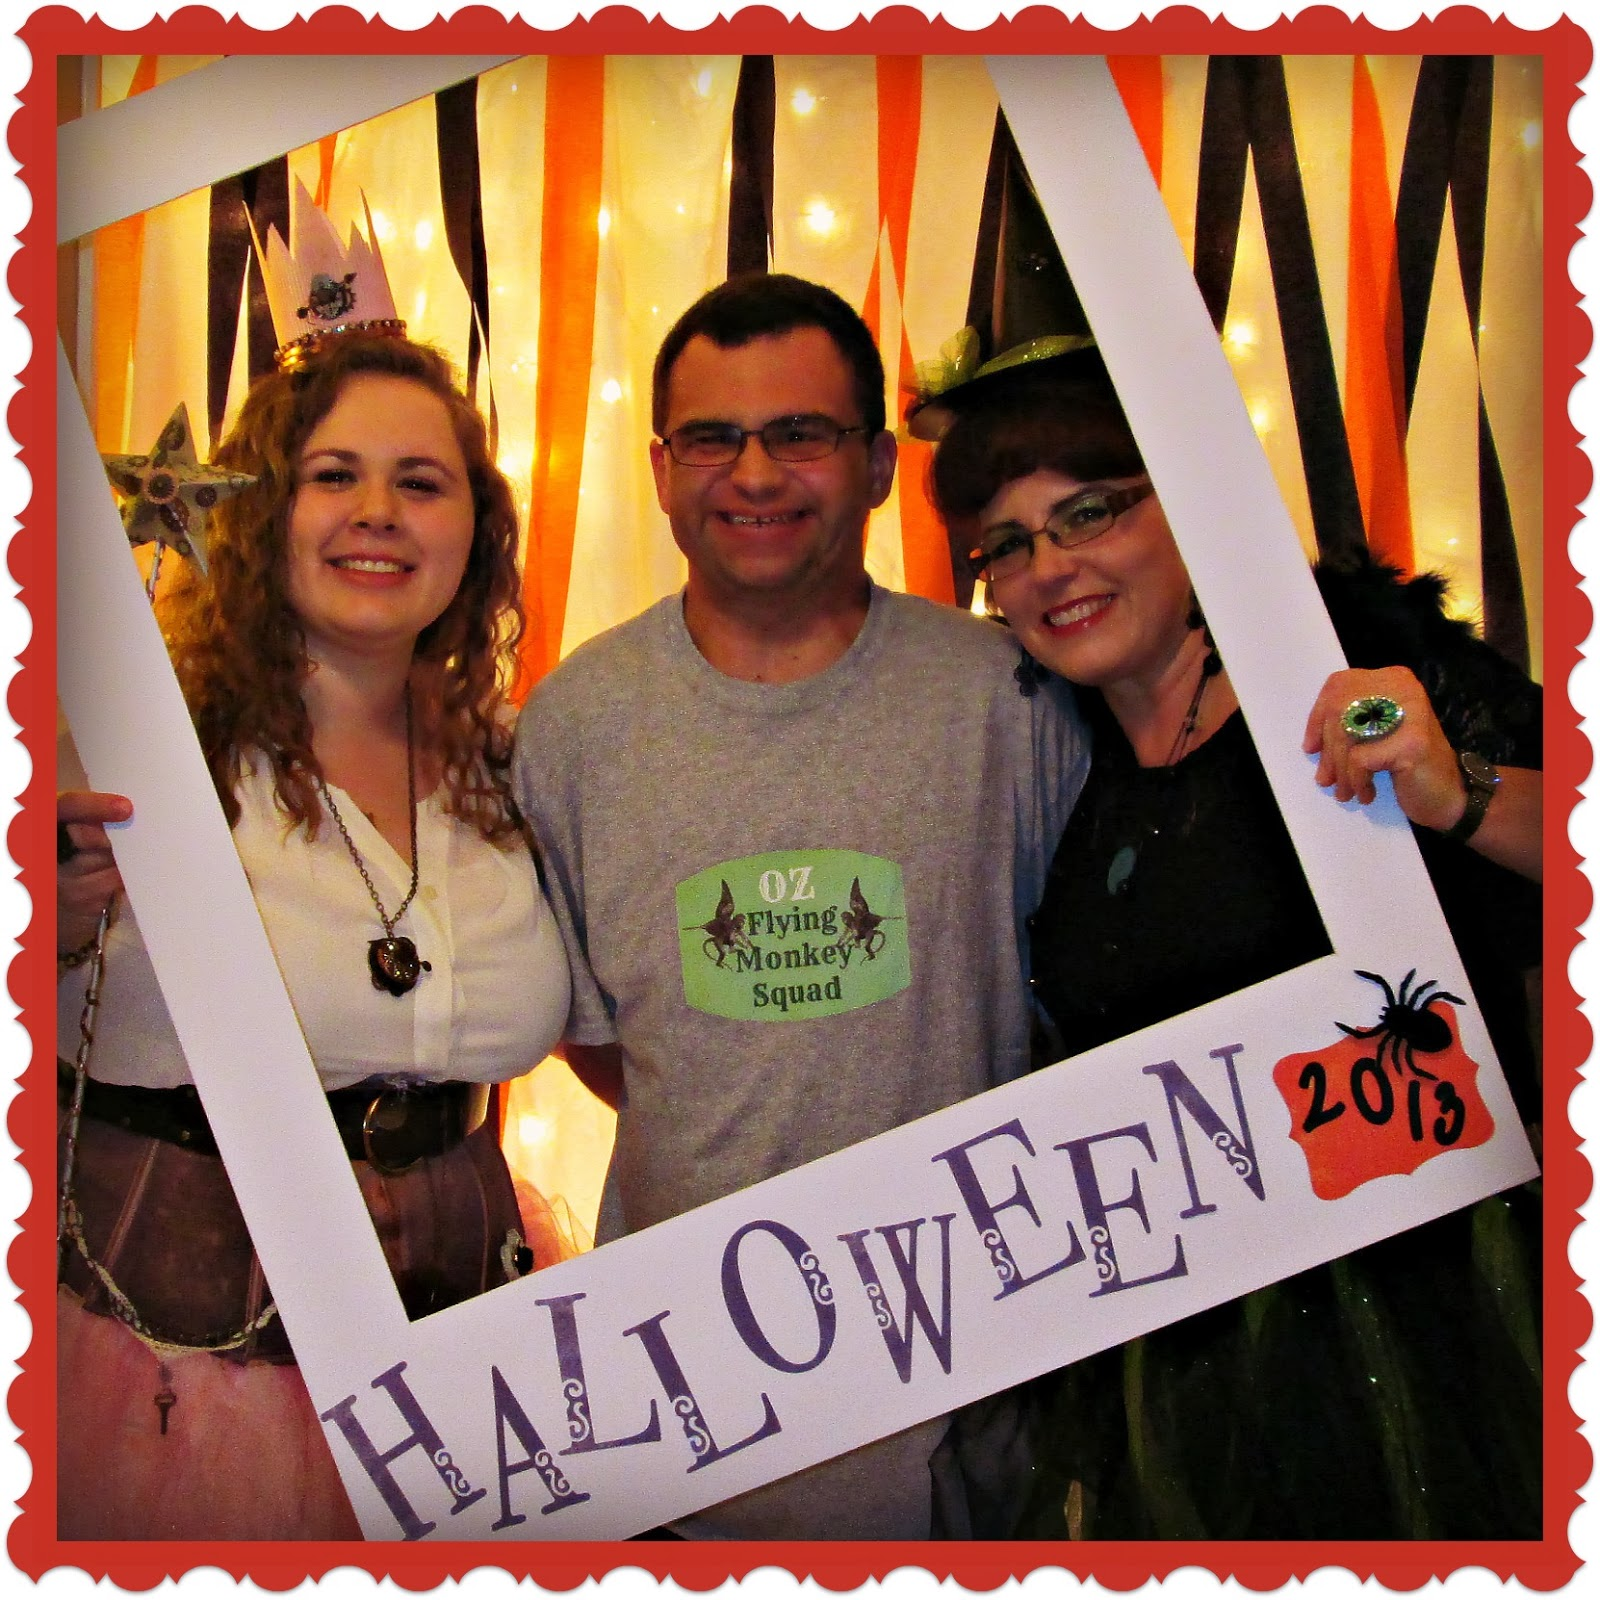 Crafty in Crosby: Halloween Party 2013 - Photo Booth Fun!